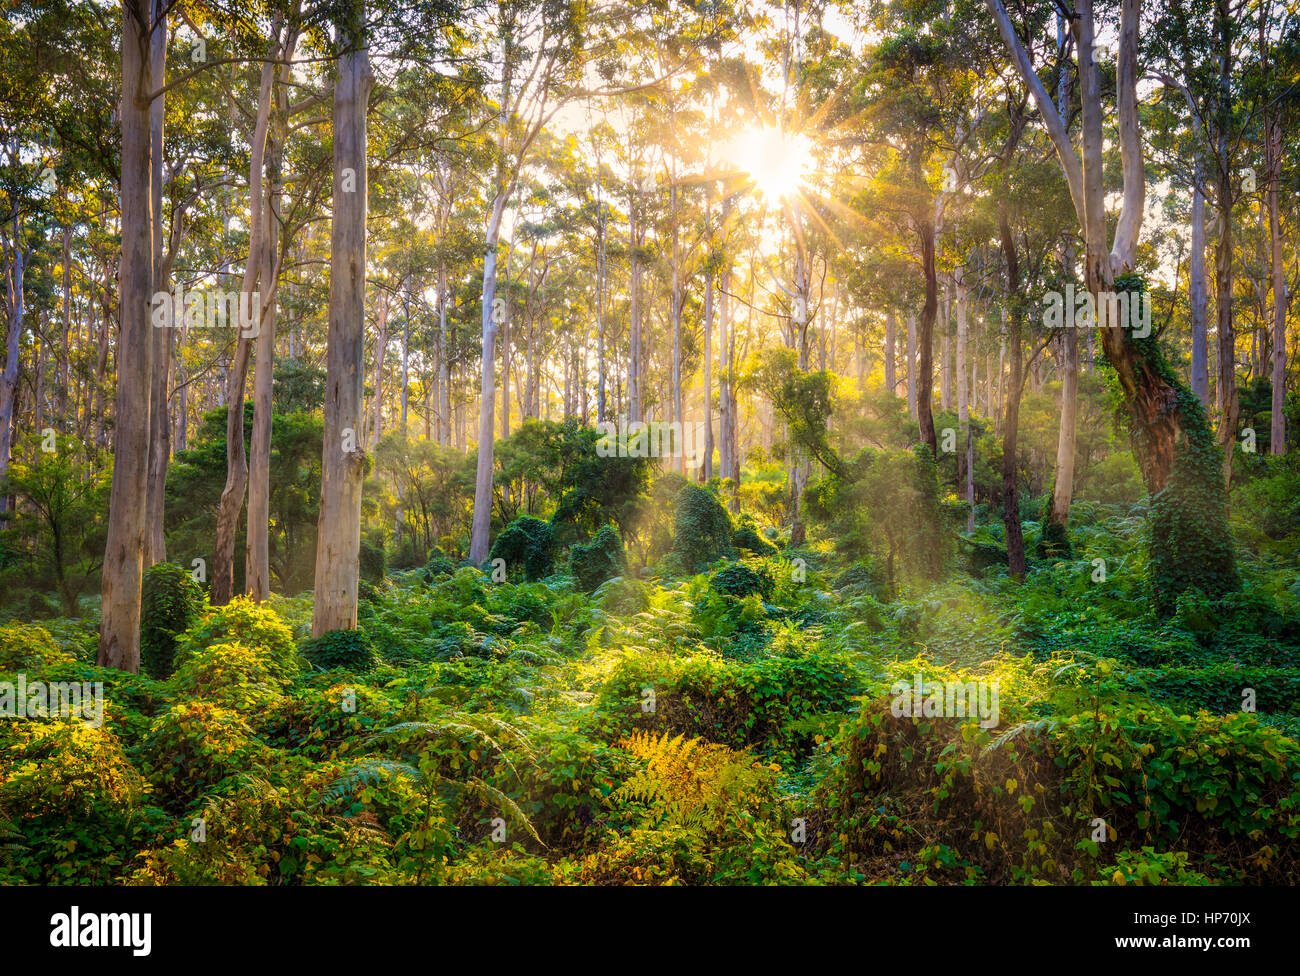 Sun rays poking through the trees in Old Karridale, Western Australia - Stock Image